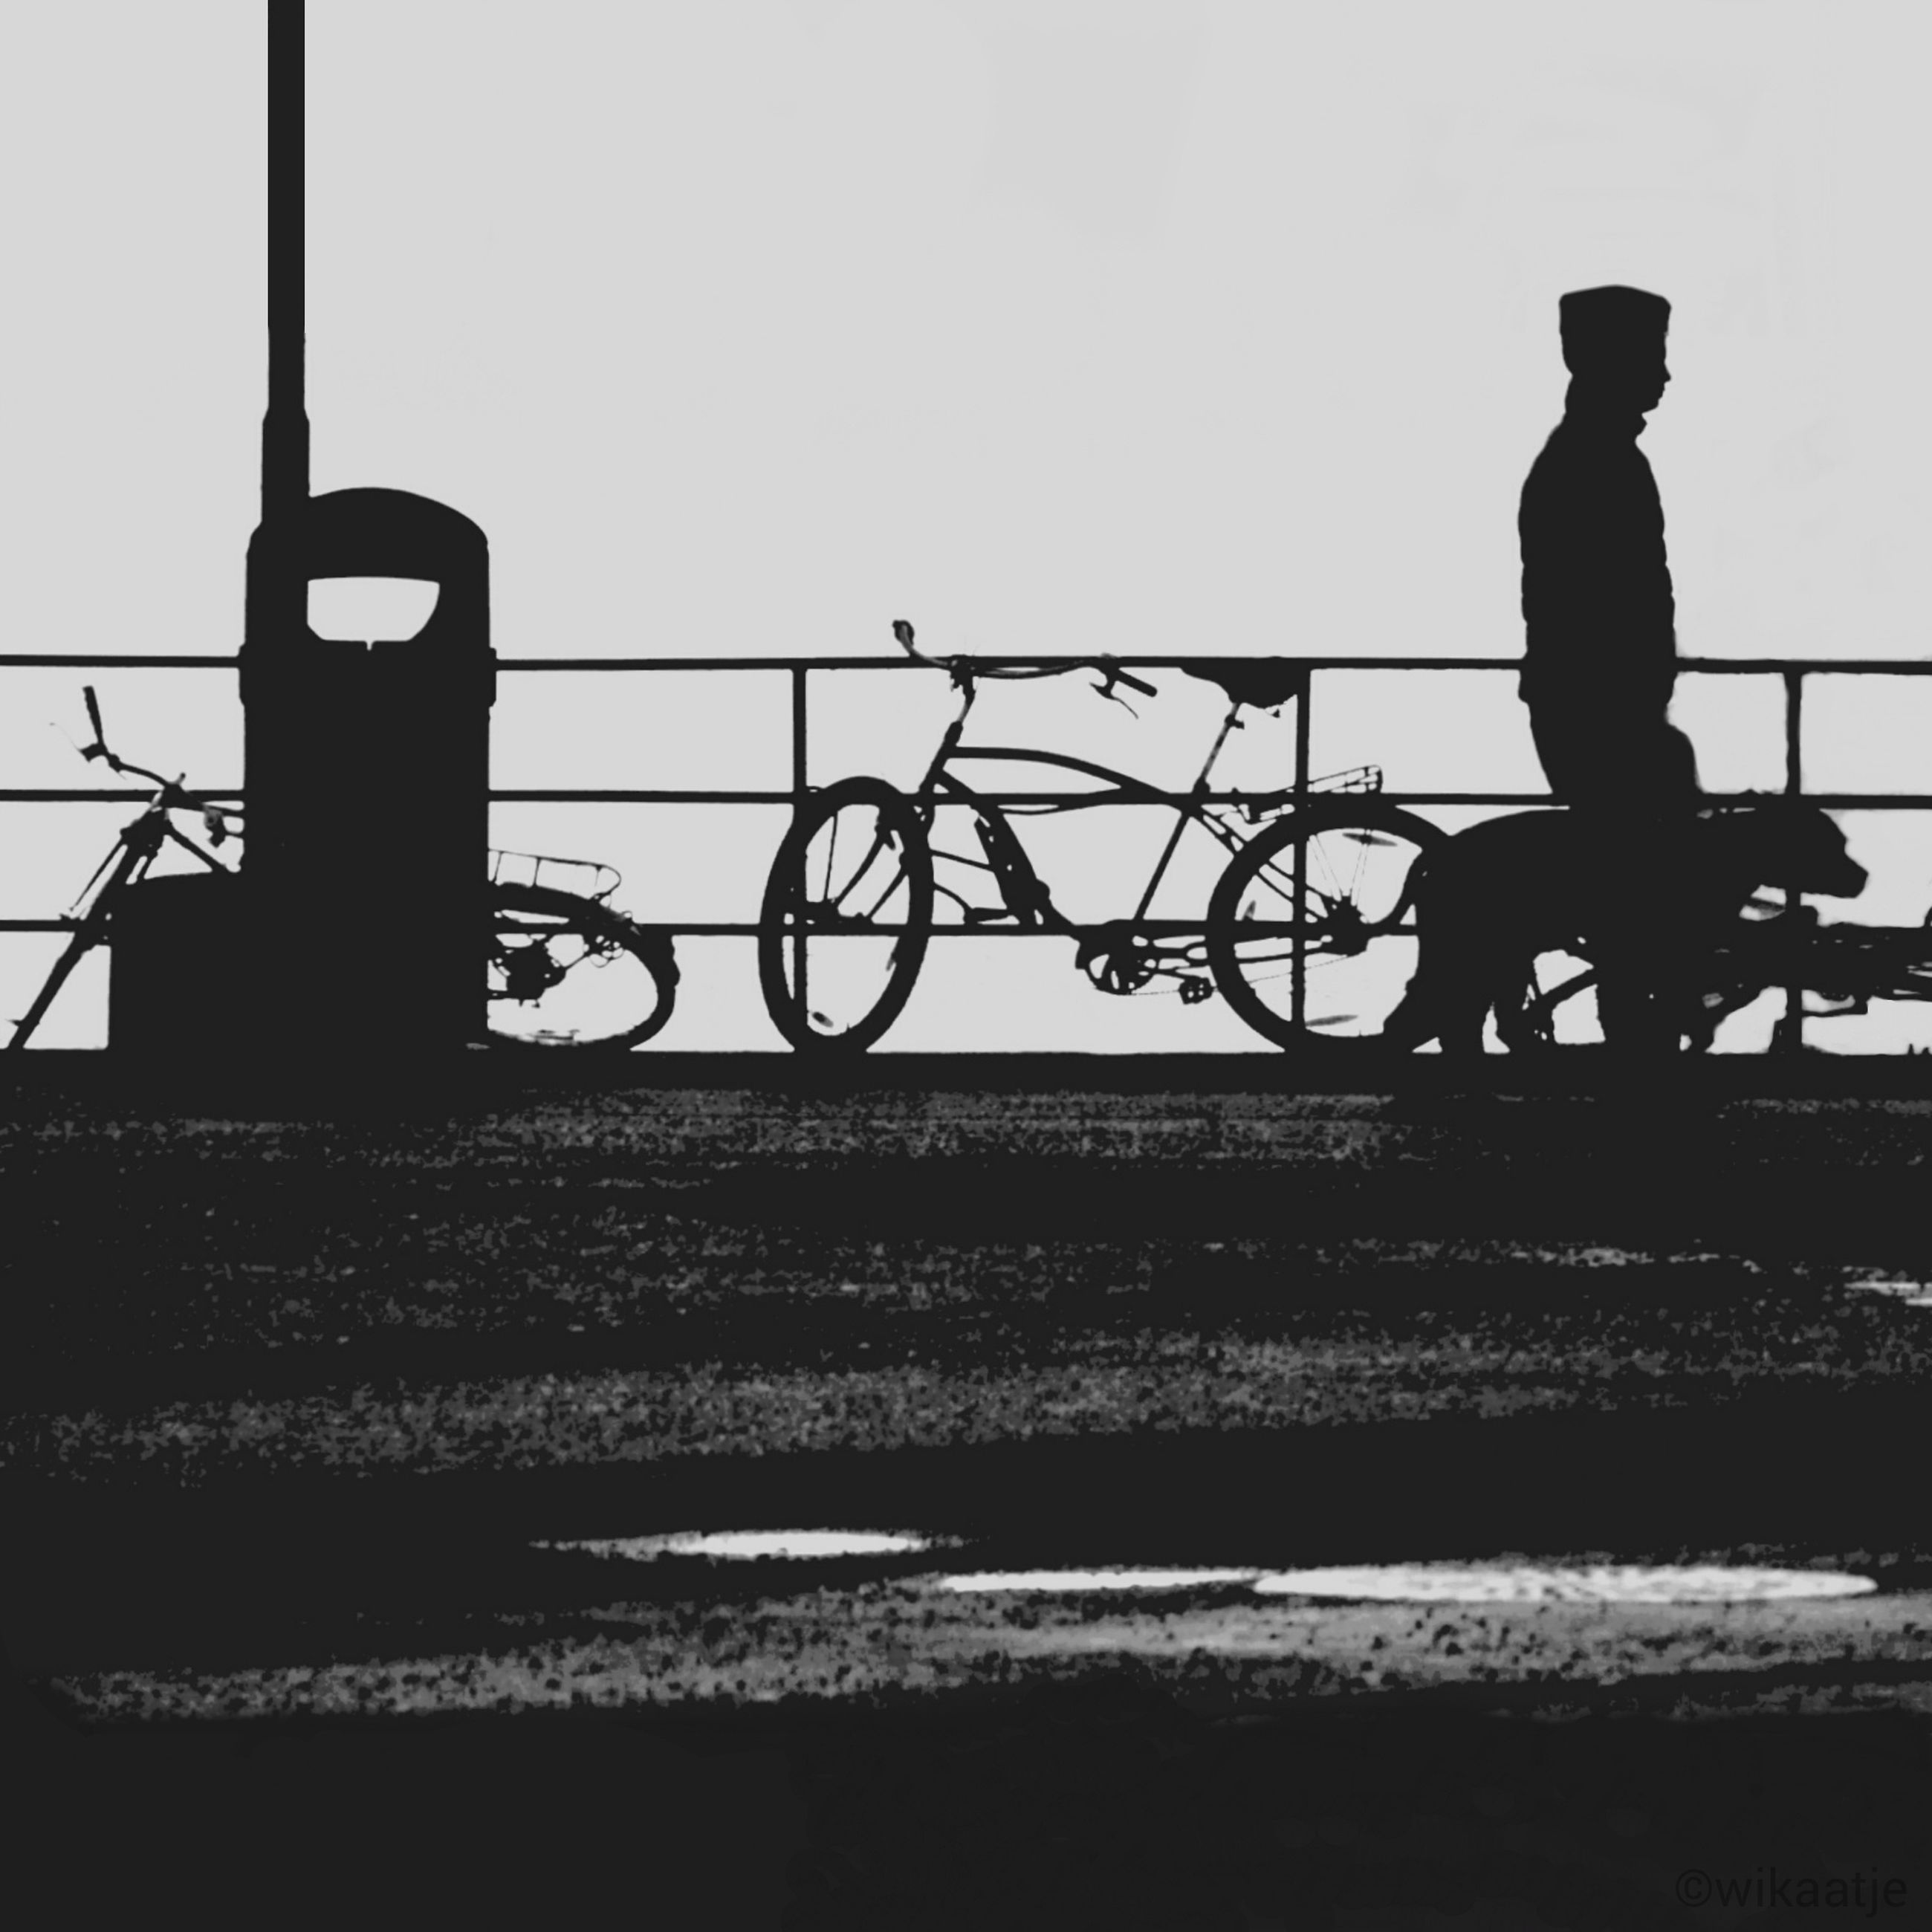 silhouette, men, lifestyles, bicycle, transportation, full length, leisure activity, clear sky, railing, side view, mode of transport, standing, rear view, cycling, sky, walking, riding